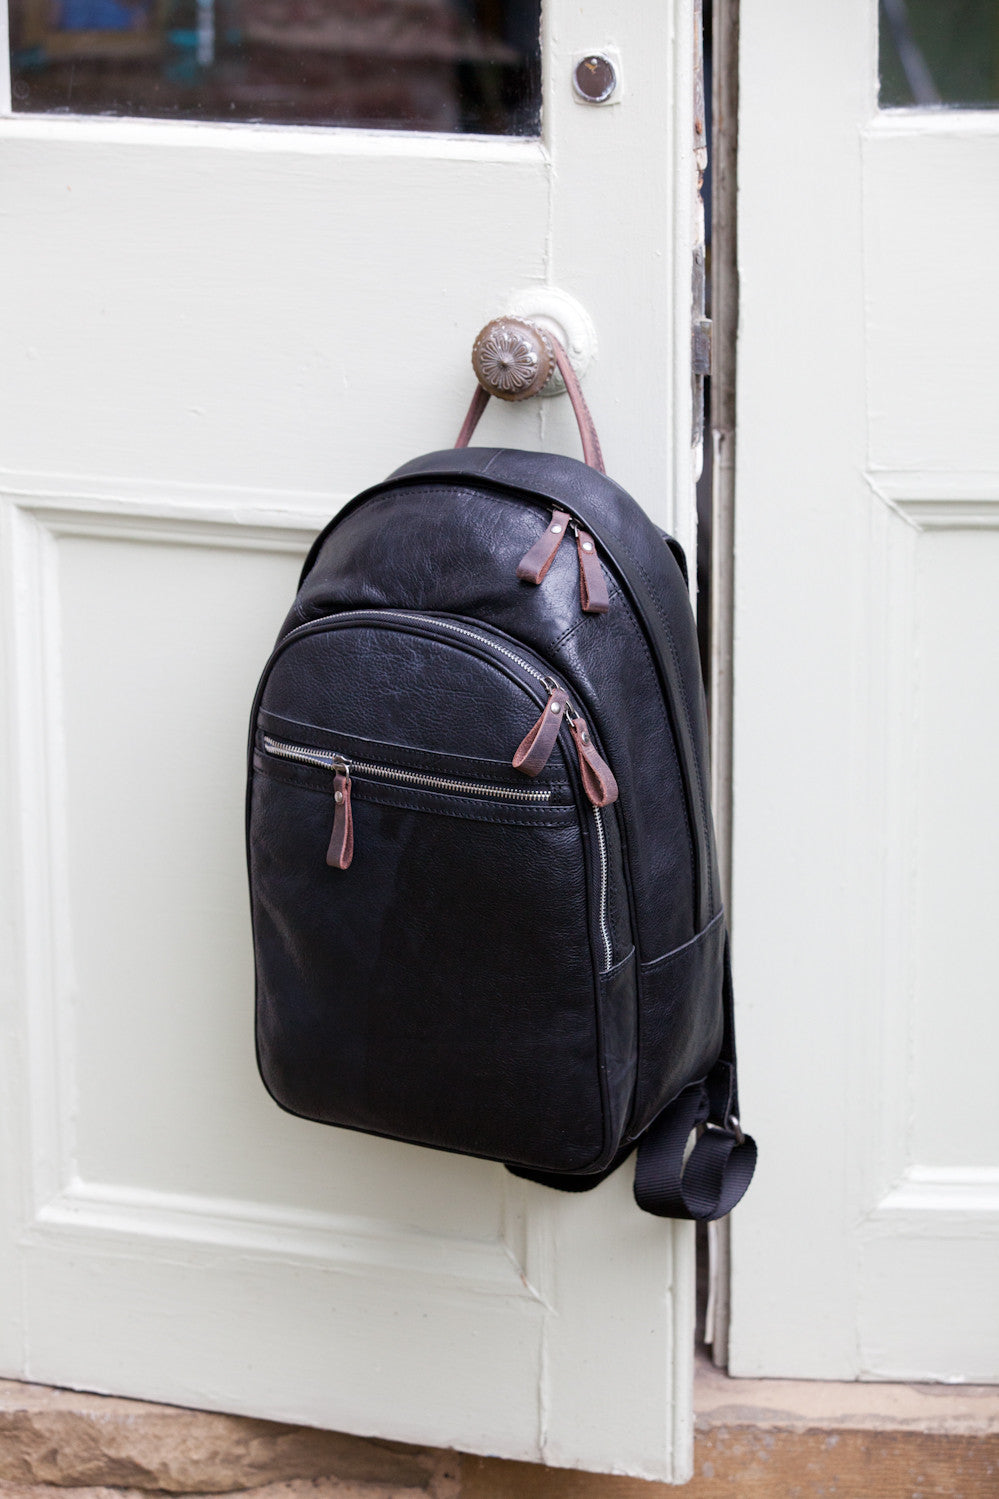 a01578c46b3 ... Unisex Leather Rucksack   Backpack - 4555 (Tan and Black) ...